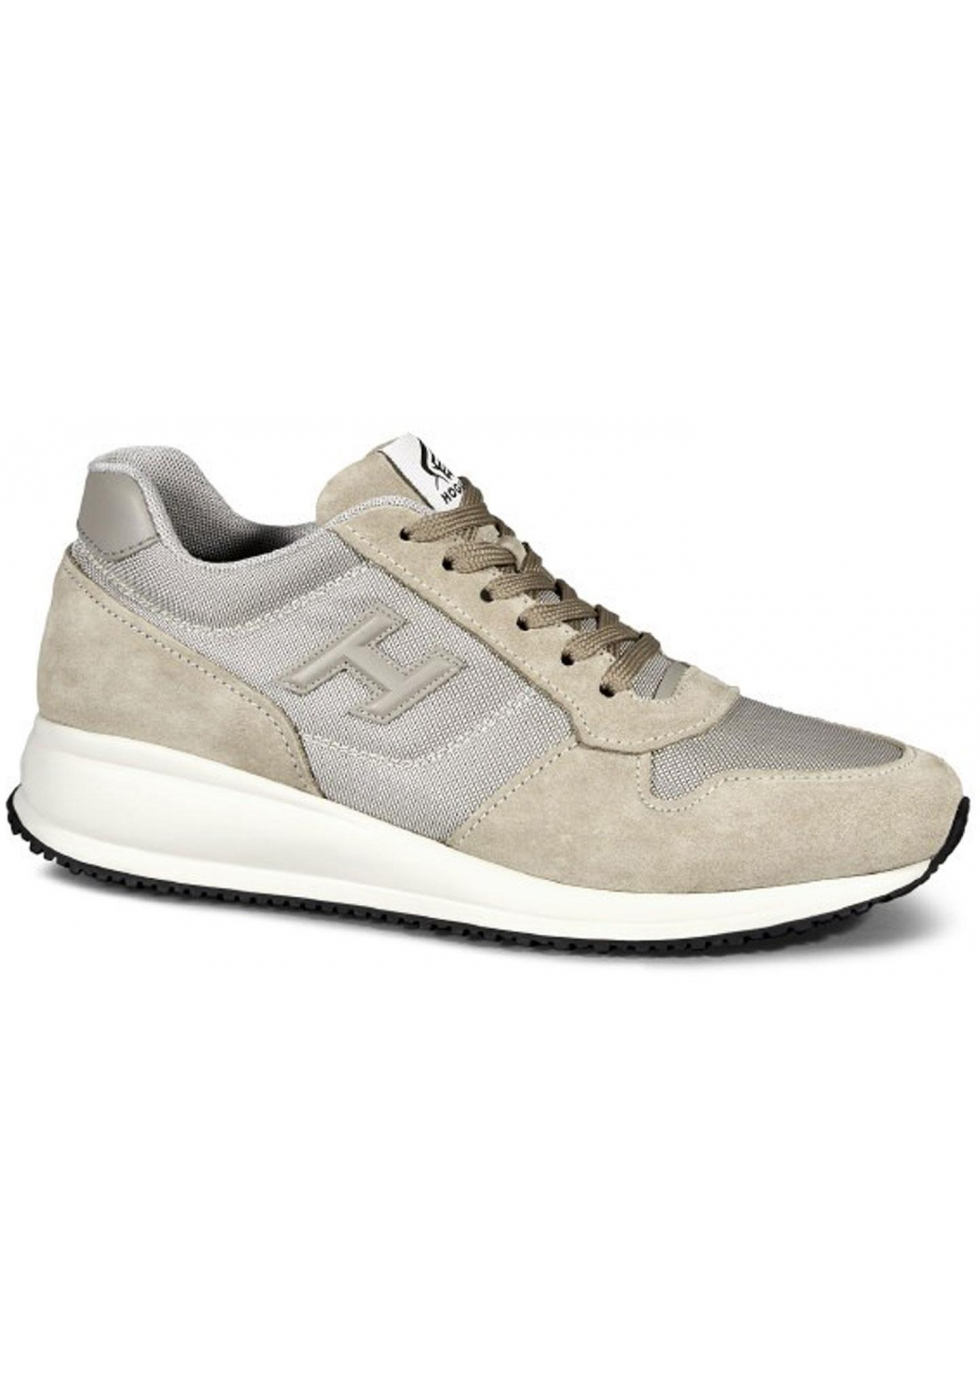 Hogan Interactive N20 Men's sneakers shoes in beige Leather